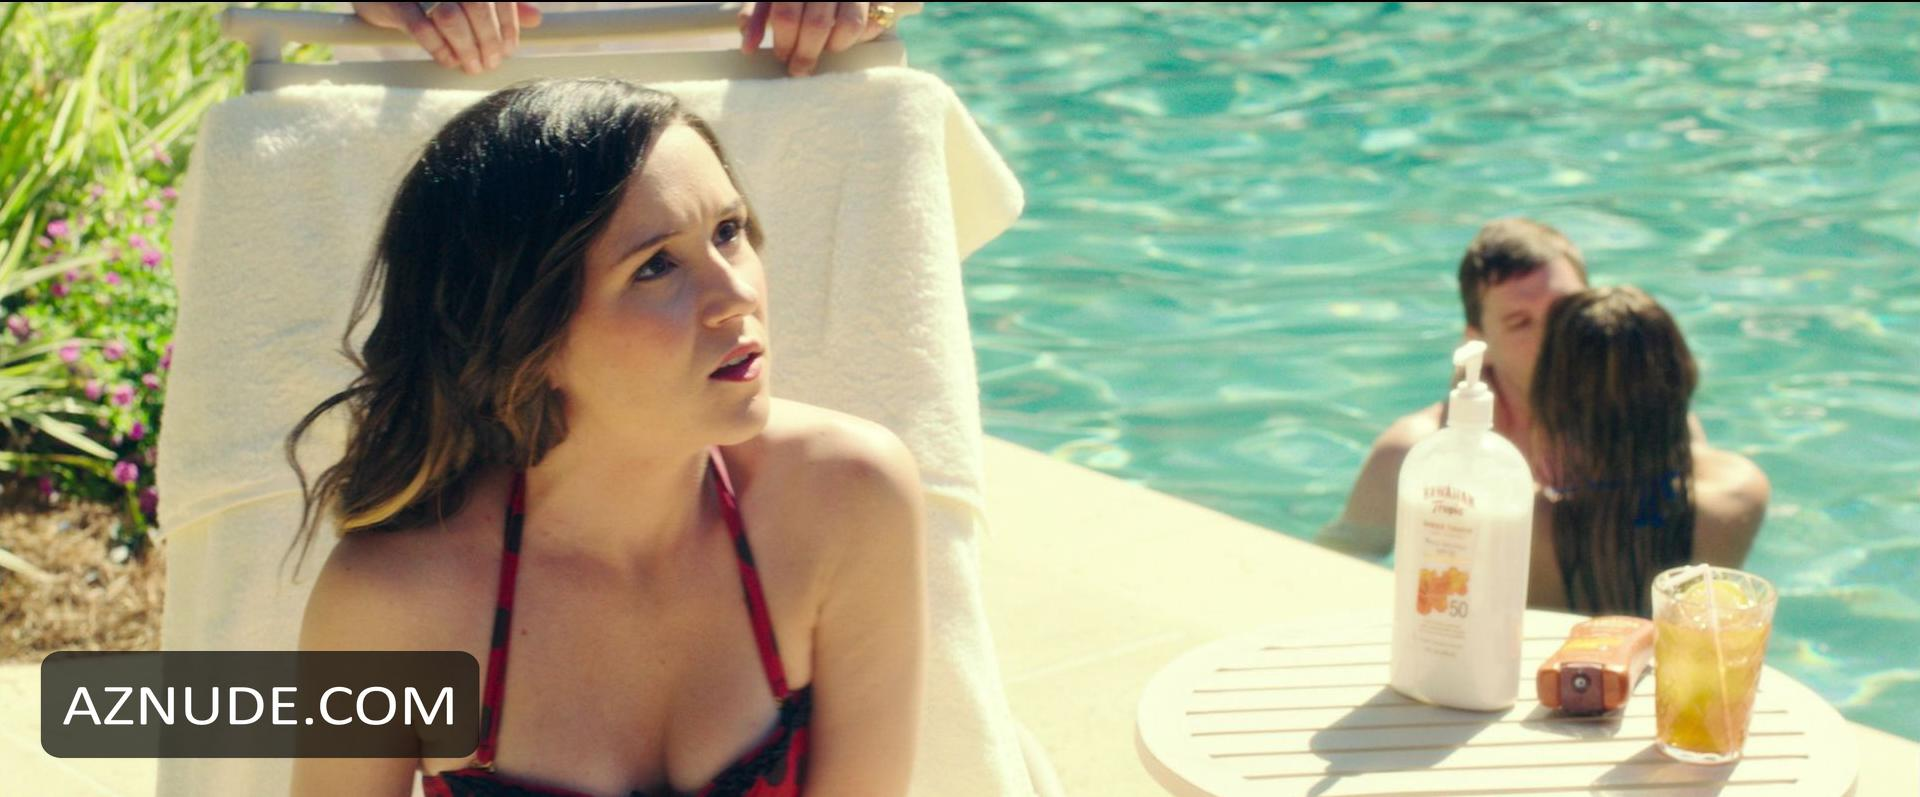 Nude shannon woodward topless remarkable